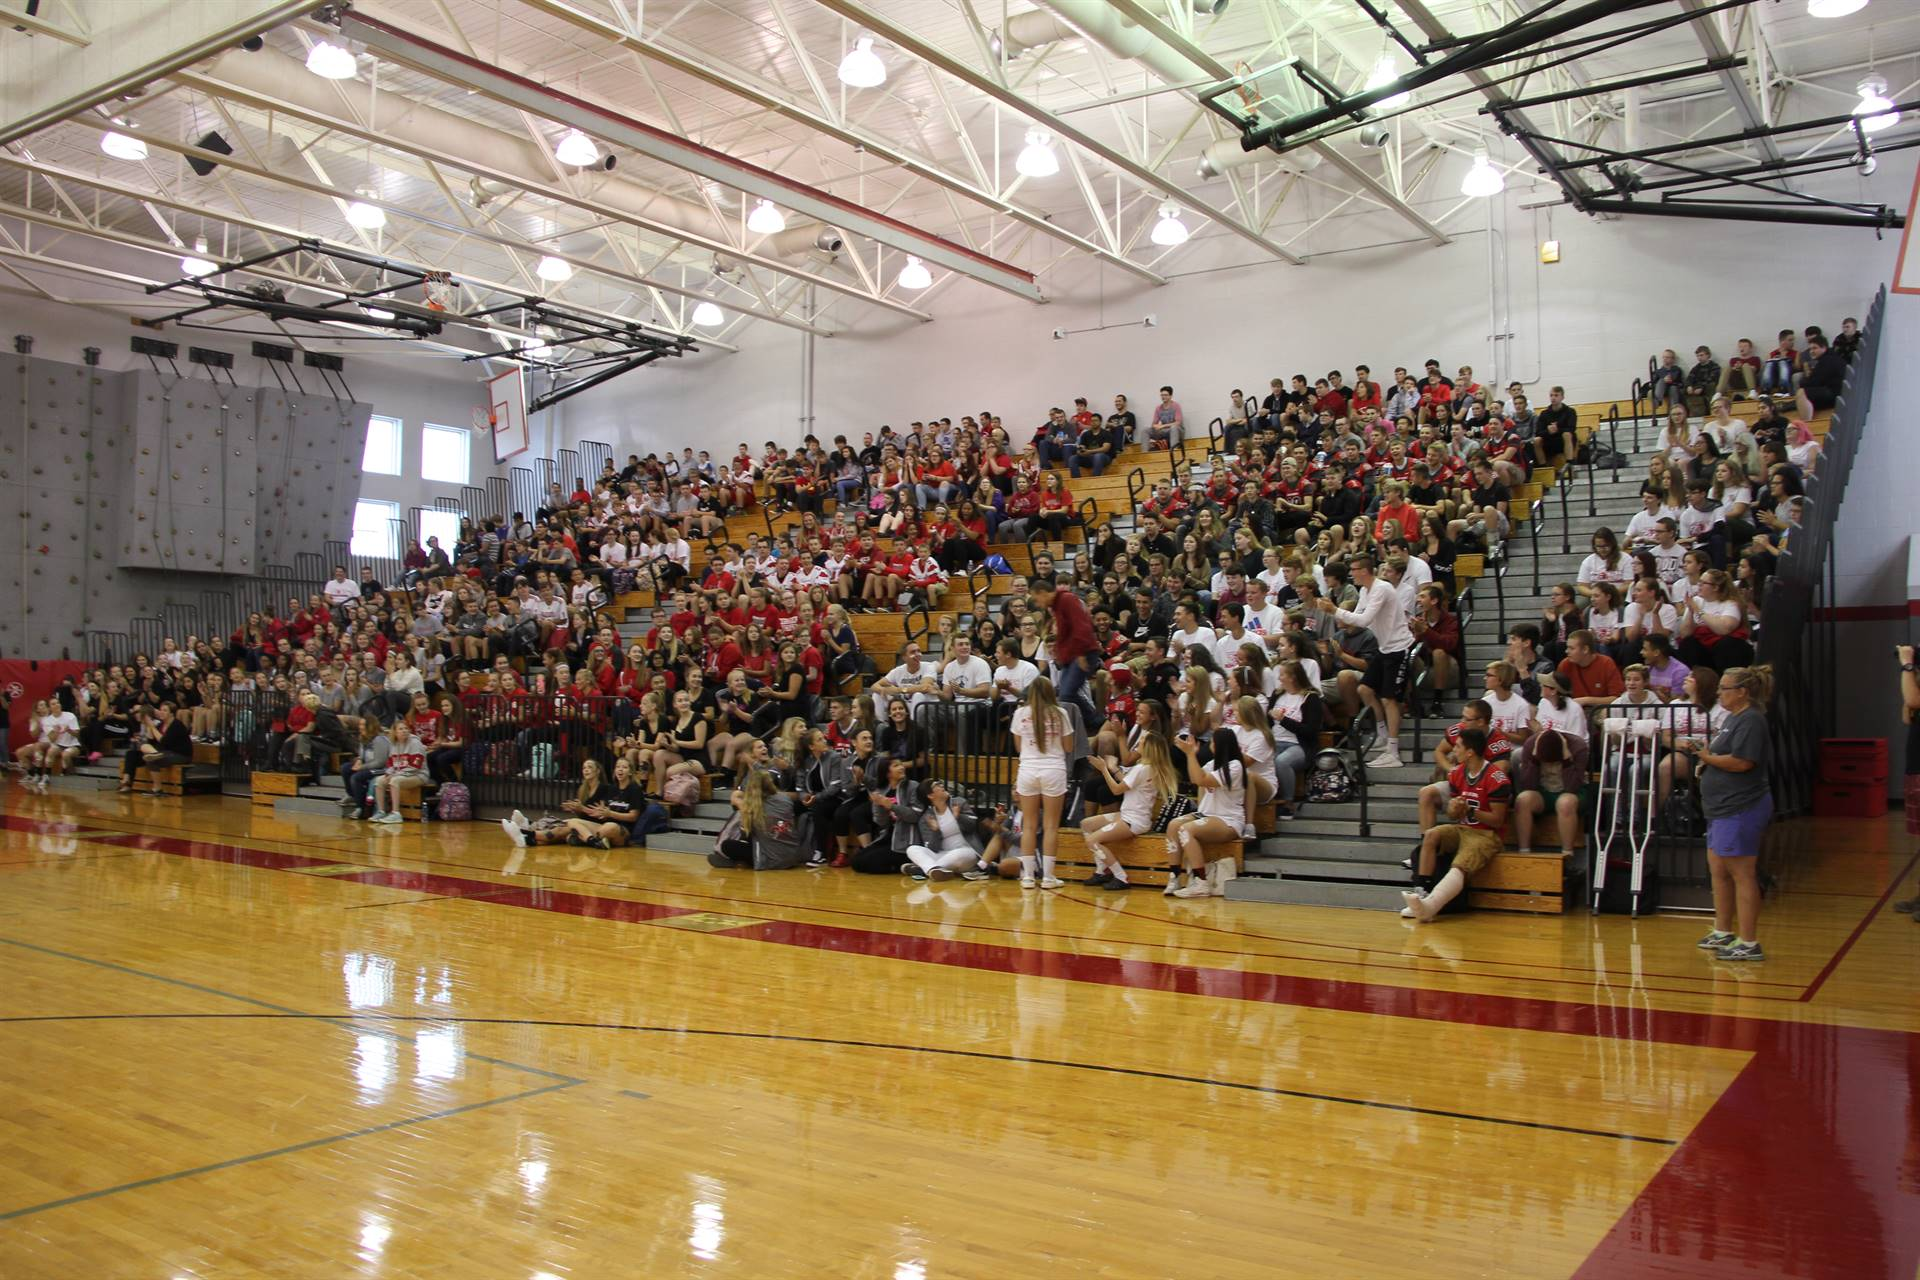 far shot of students in bleachers at high school pep rally